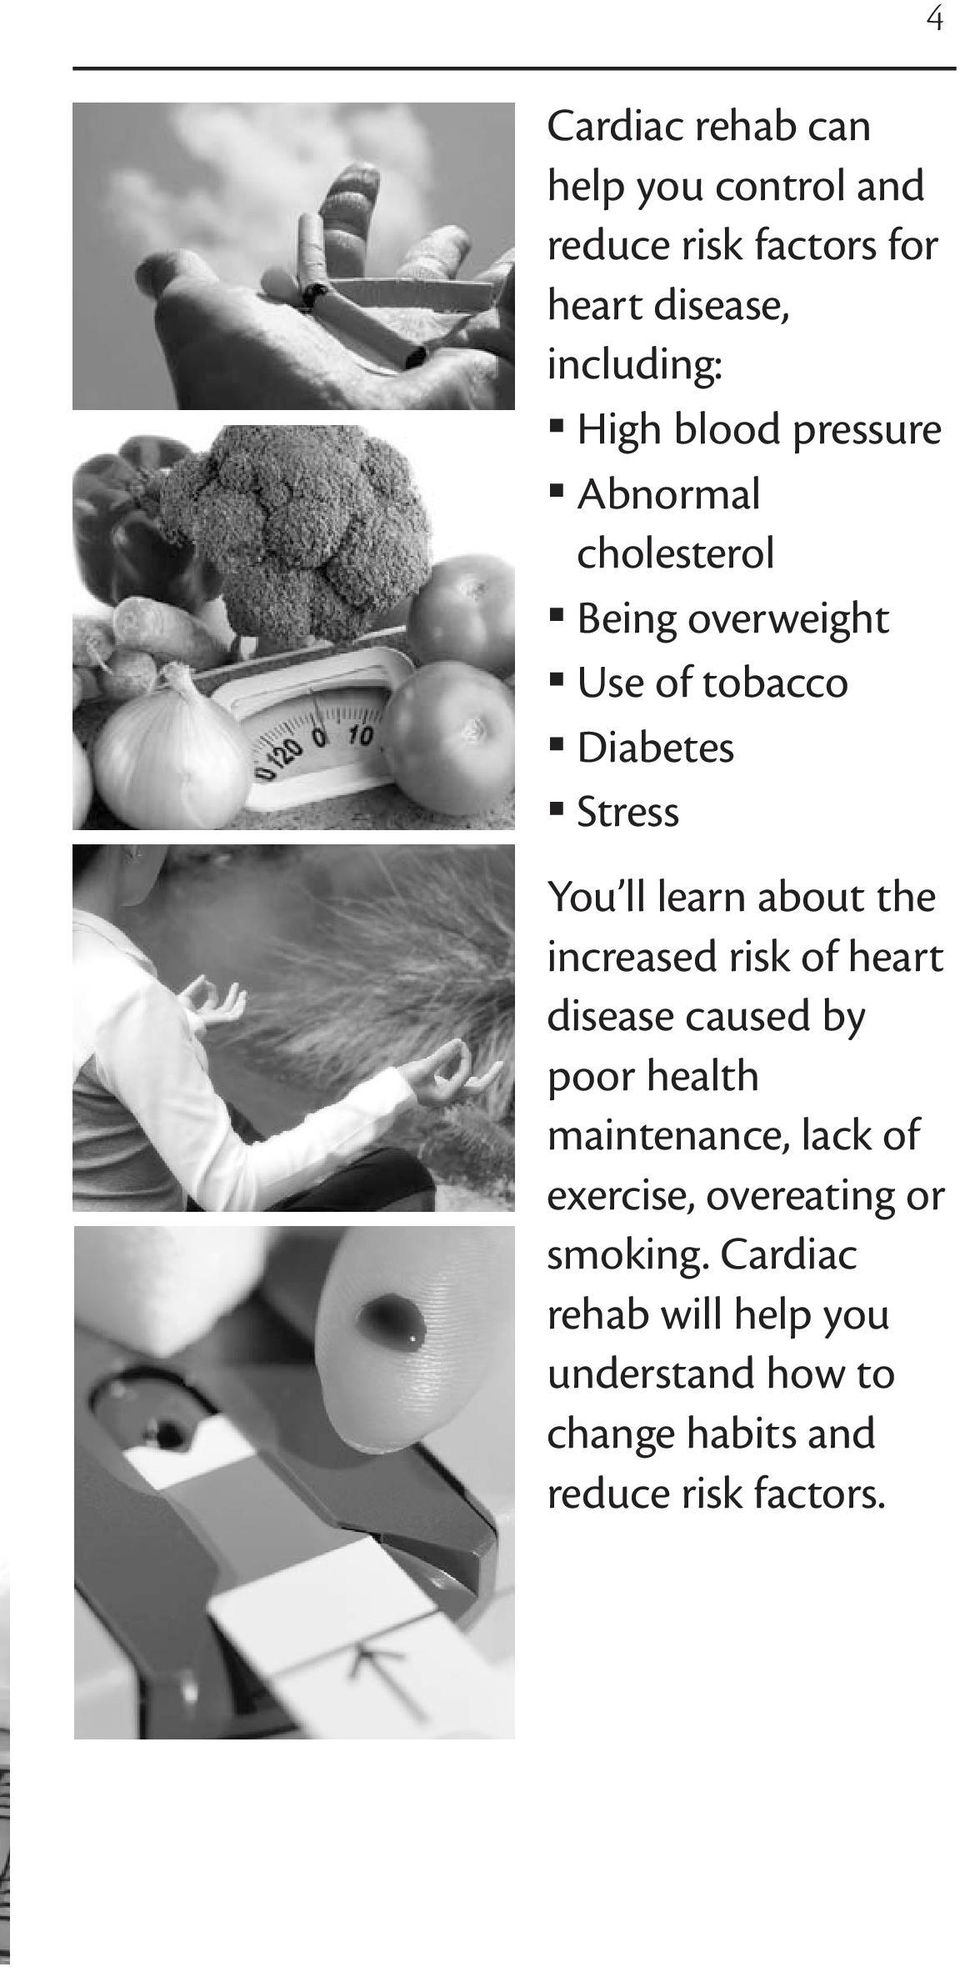 about the increased risk of heart disease caused by poor health maintenance, lack of exercise,